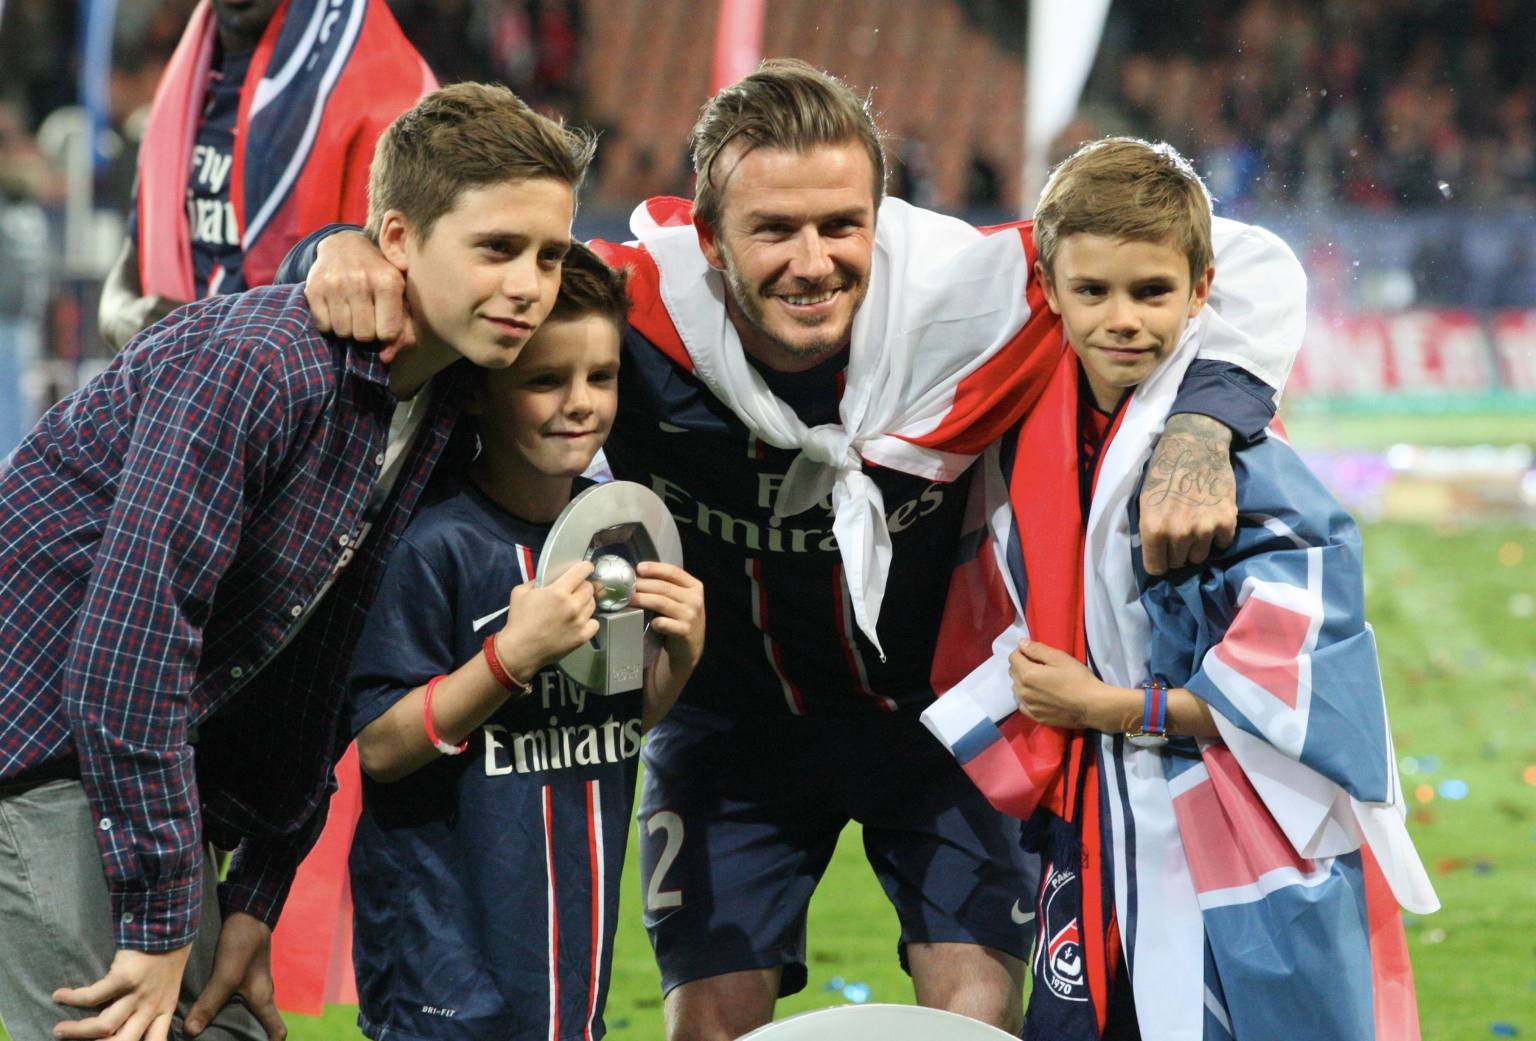 Romeo Beckham 'Signs For Arsenal' | HuffPost UK